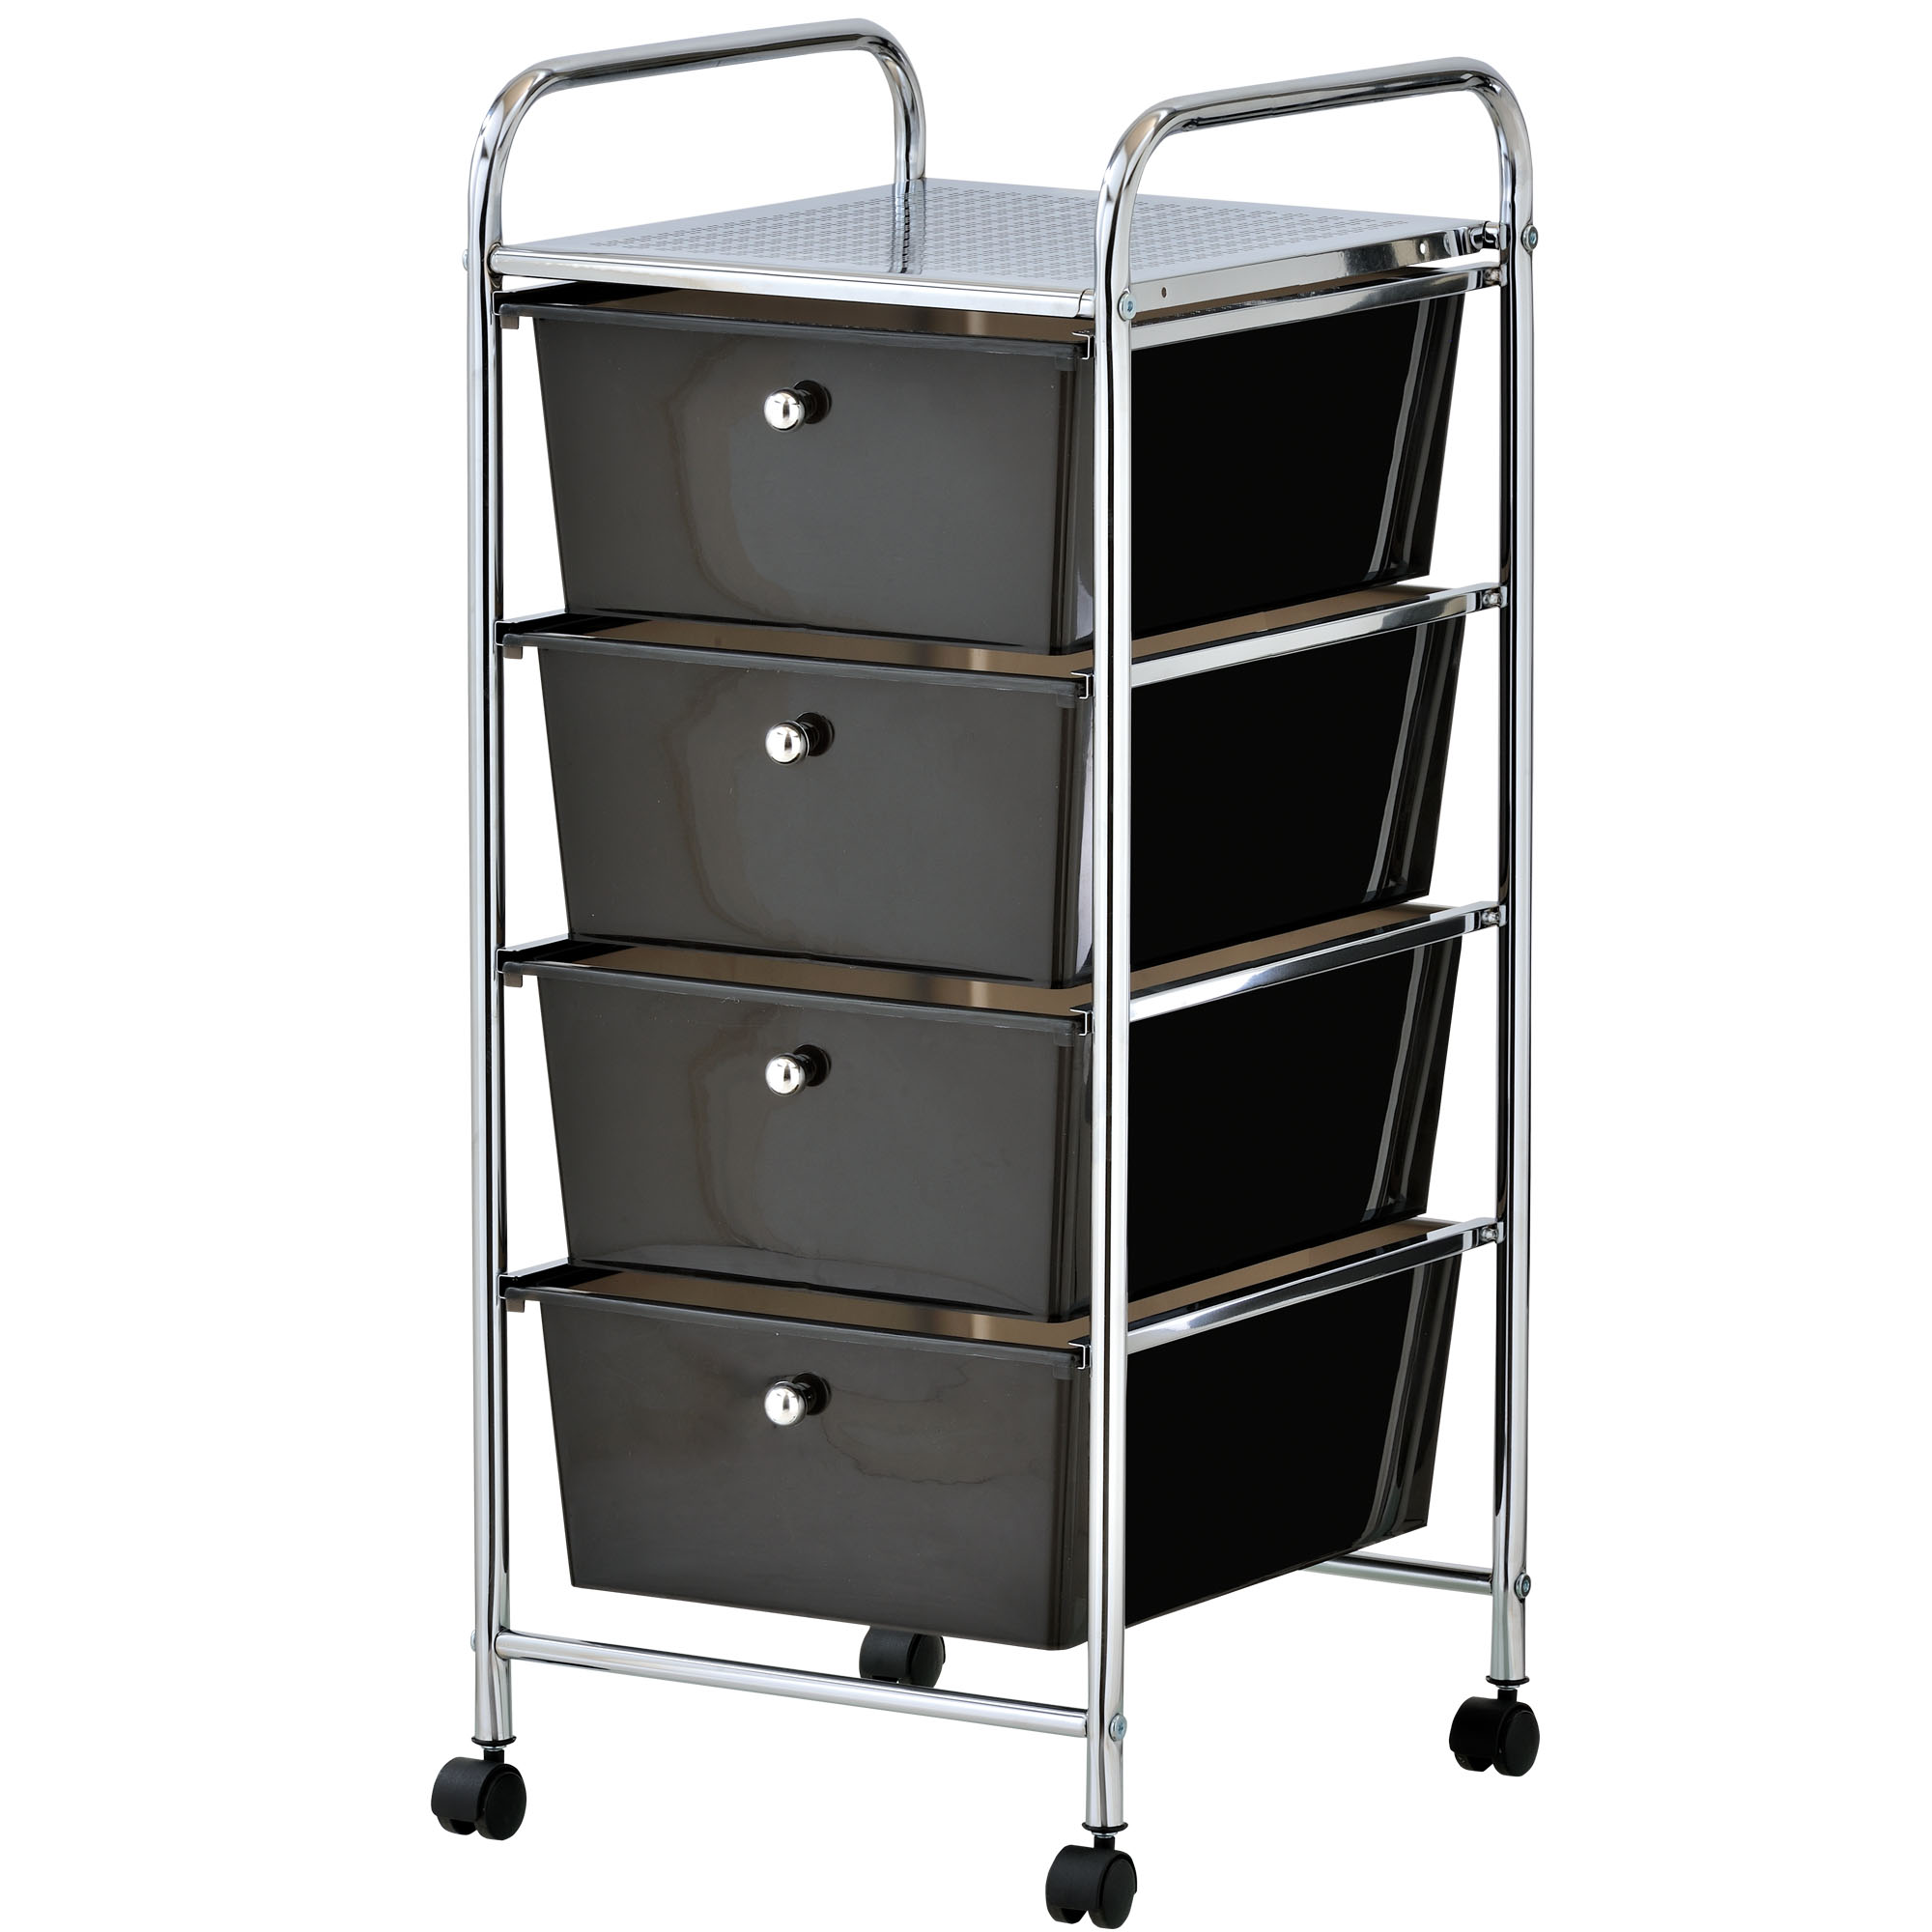 VonHaus 4 Drawer Mobile Storage Trolley for Home Office or ...